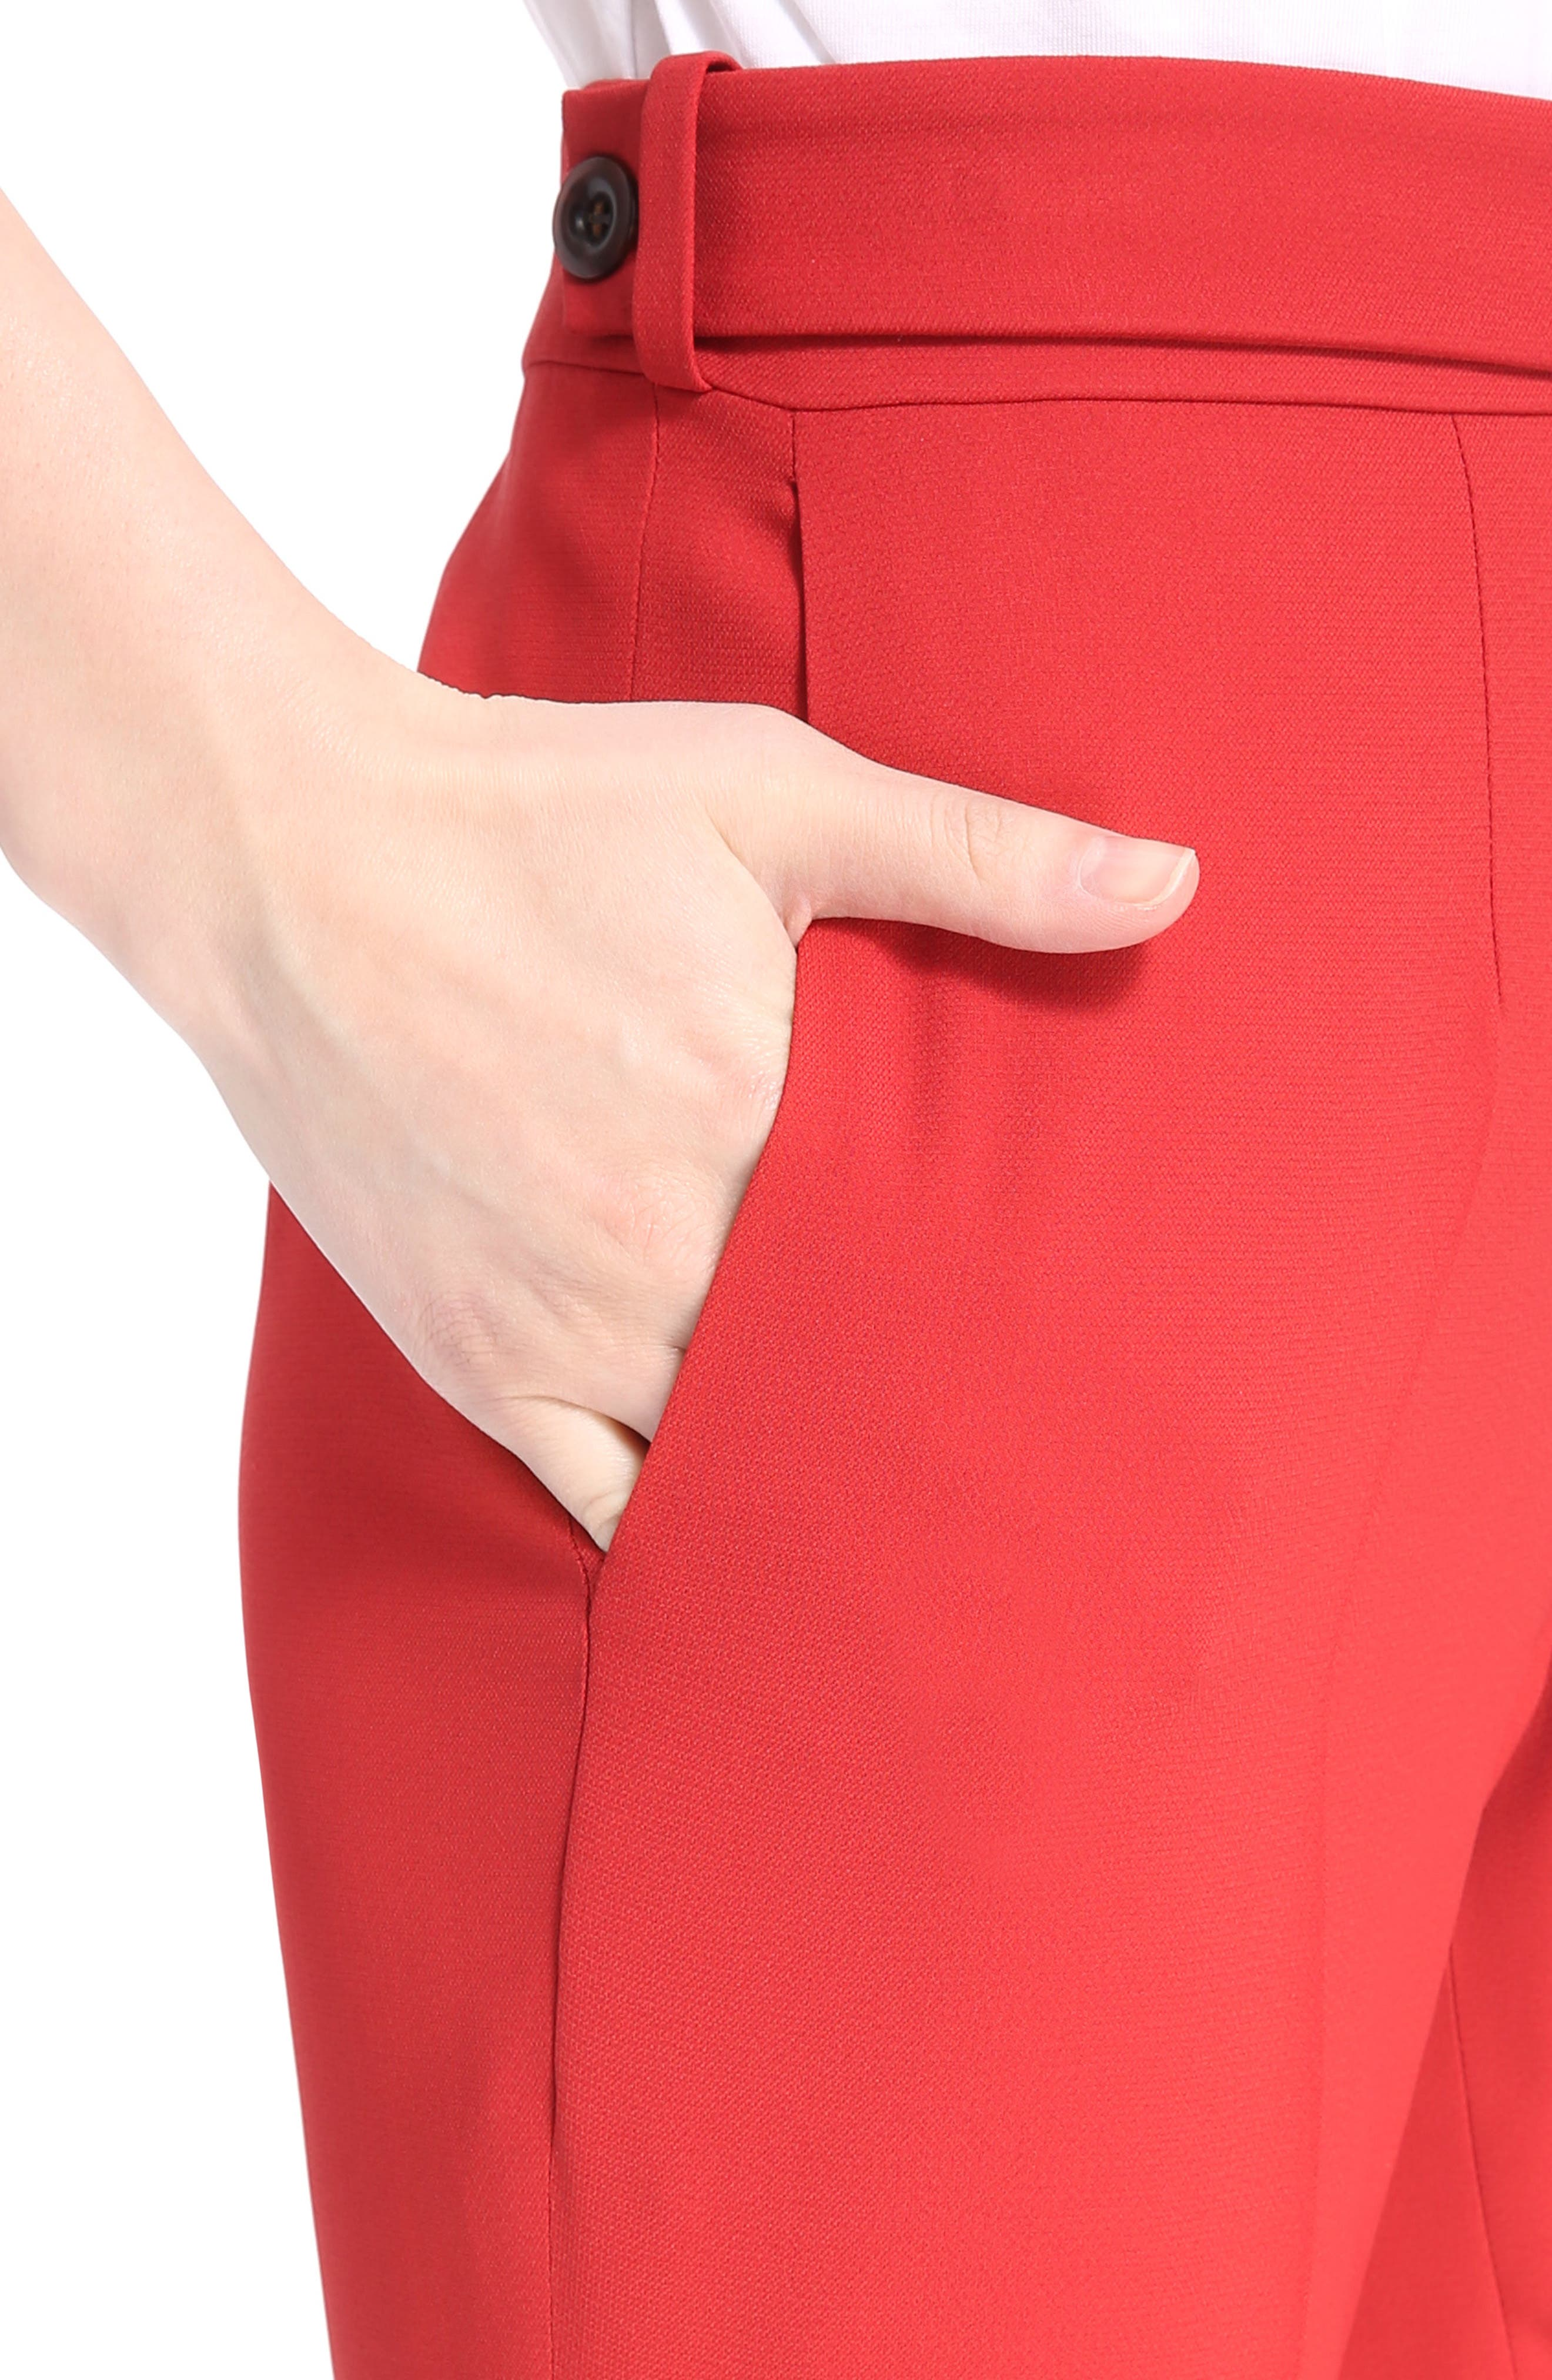 Cady Flare Suiting Pants,                             Alternate thumbnail 4, color,                             Ginger Red